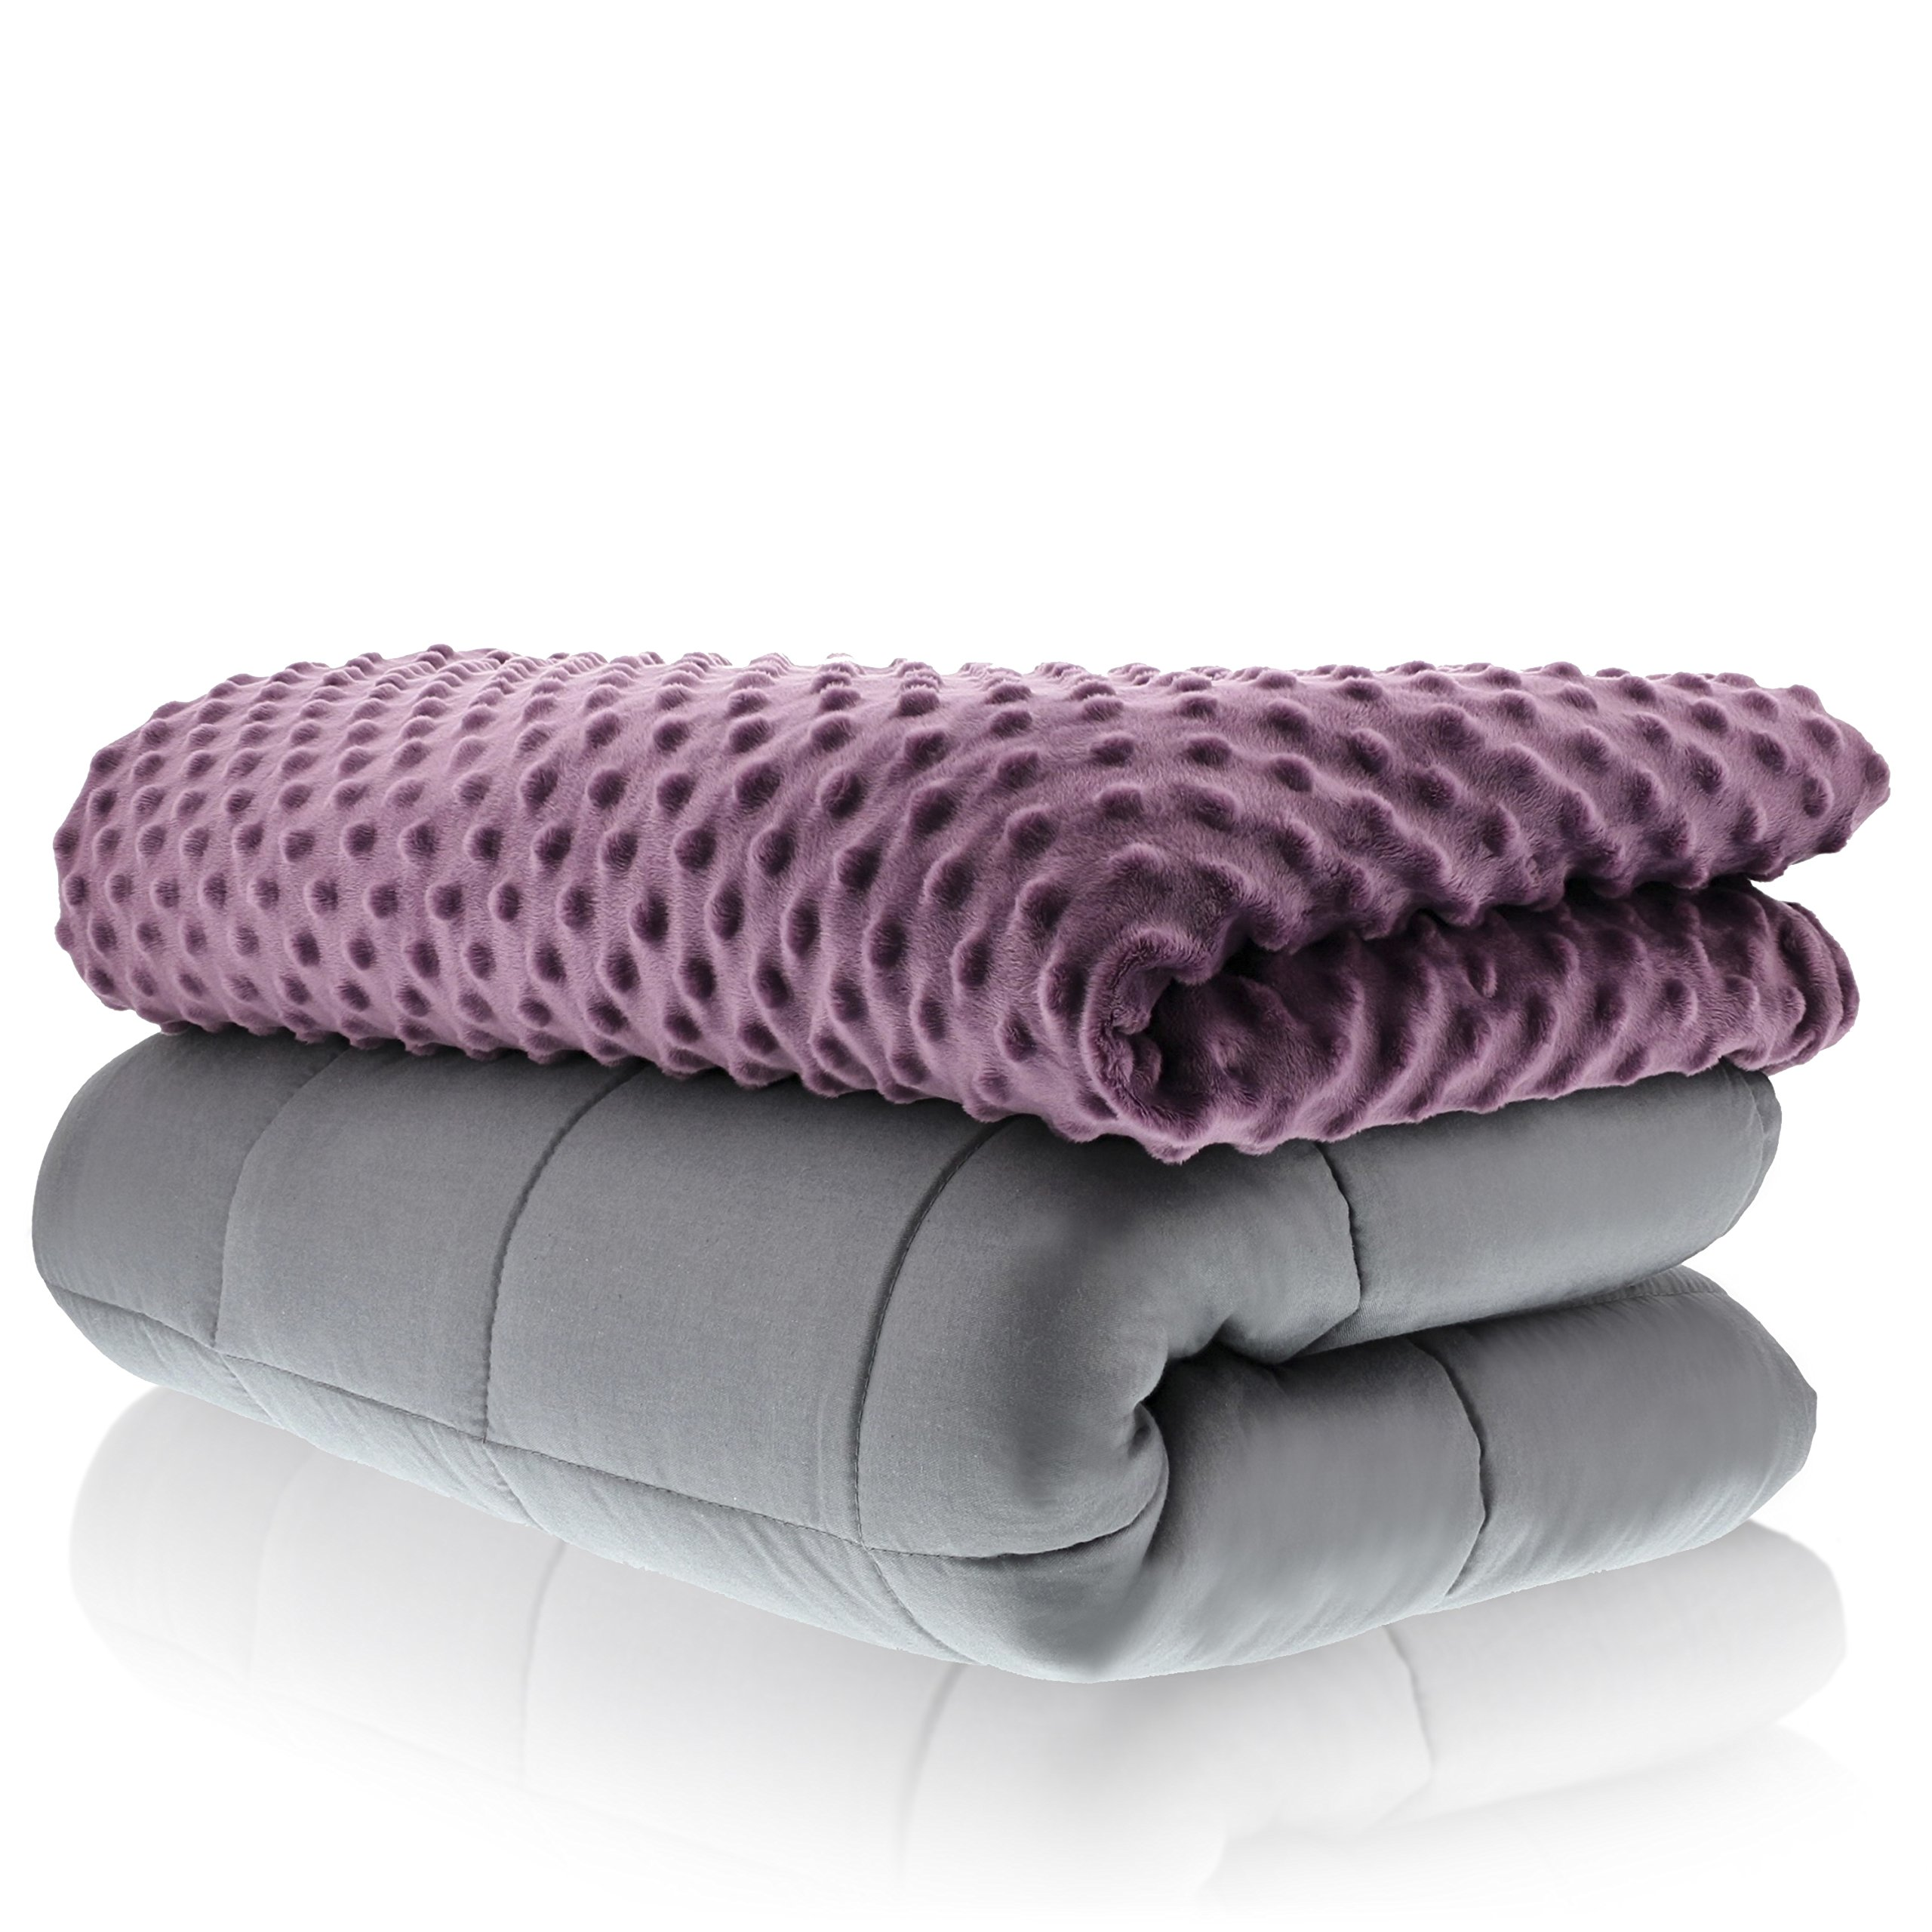 Sonno Zona Weighted Blanket Adult Size - Blanket with Cover Included - Plum 60x80 inches 20 Pound - Blankets Made from Relaxation Sleep Fabric for Natural Calm by Sonno Zona